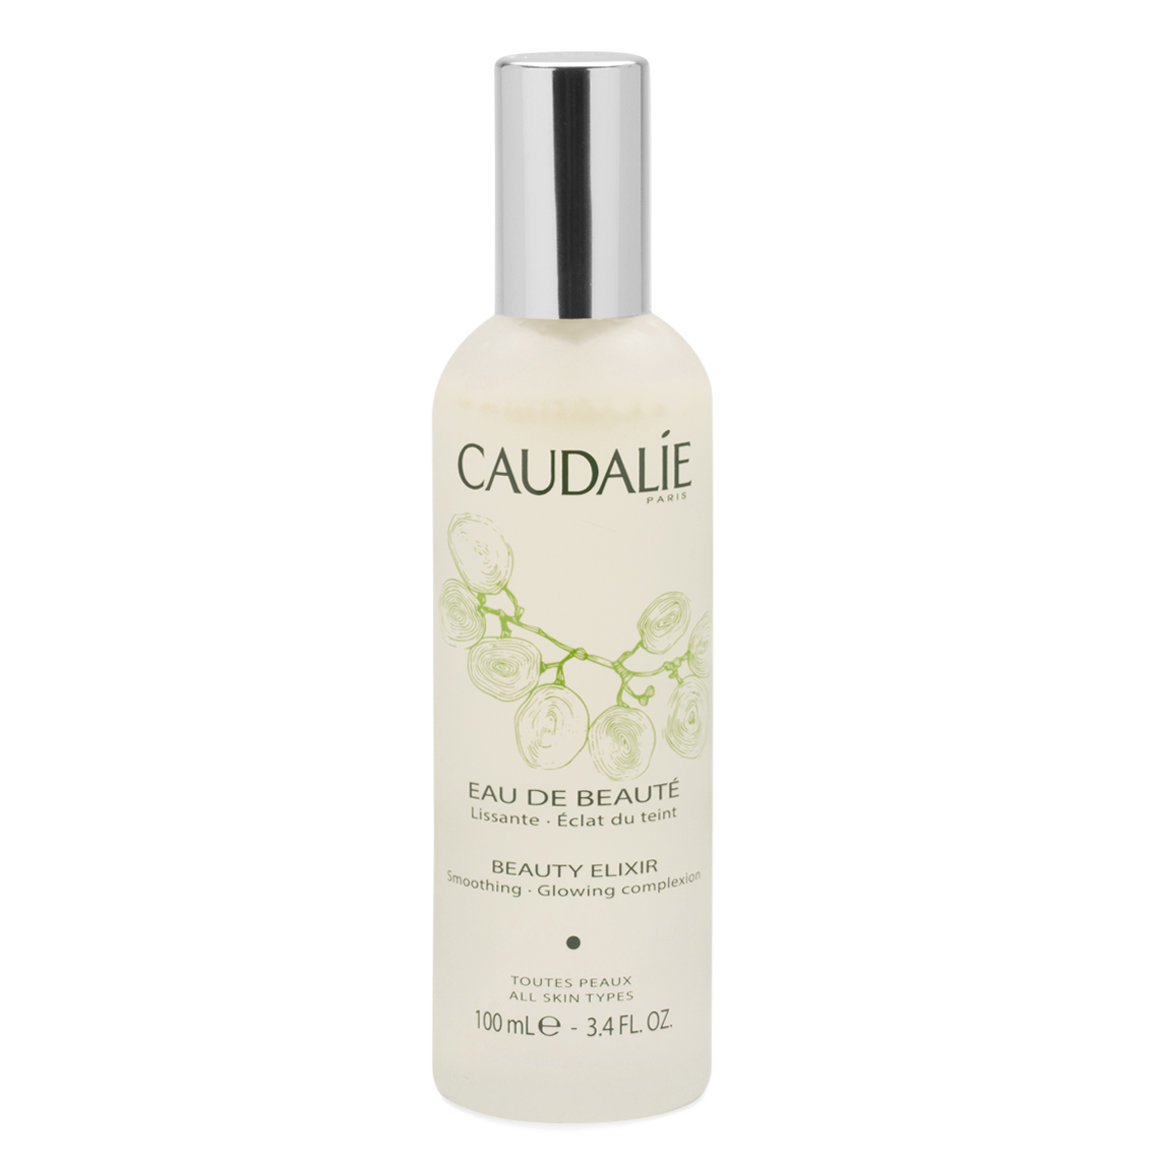 Caudalie Beauty Elixir 100 ml alternative view 1 - product swatch.